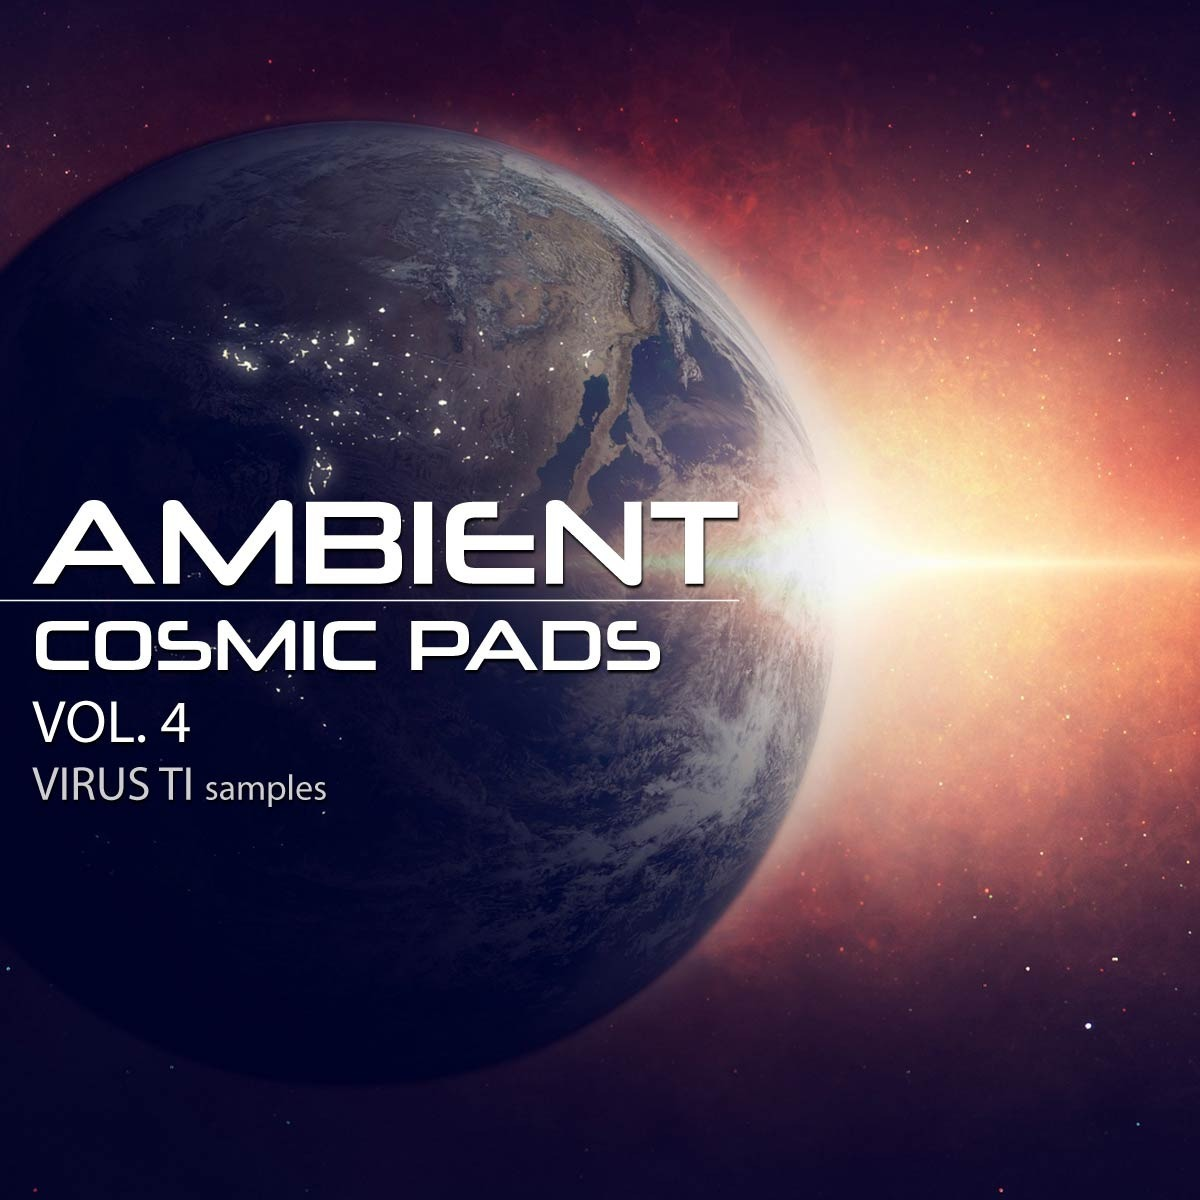 Ambient Cosmic Pads Vol 4